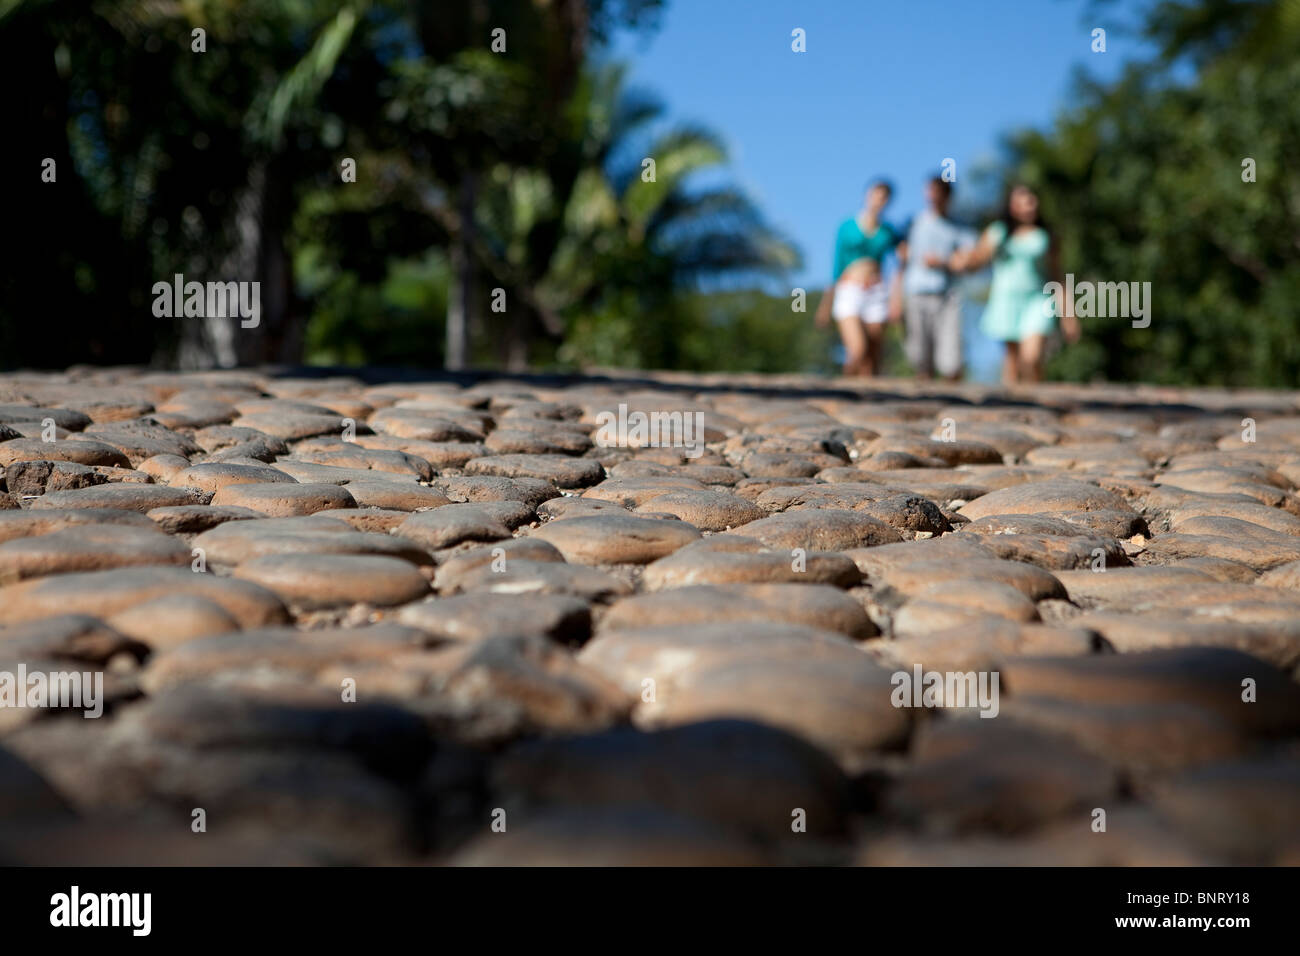 Three young adults stroll down a sunny cobble stone street. - Stock Image